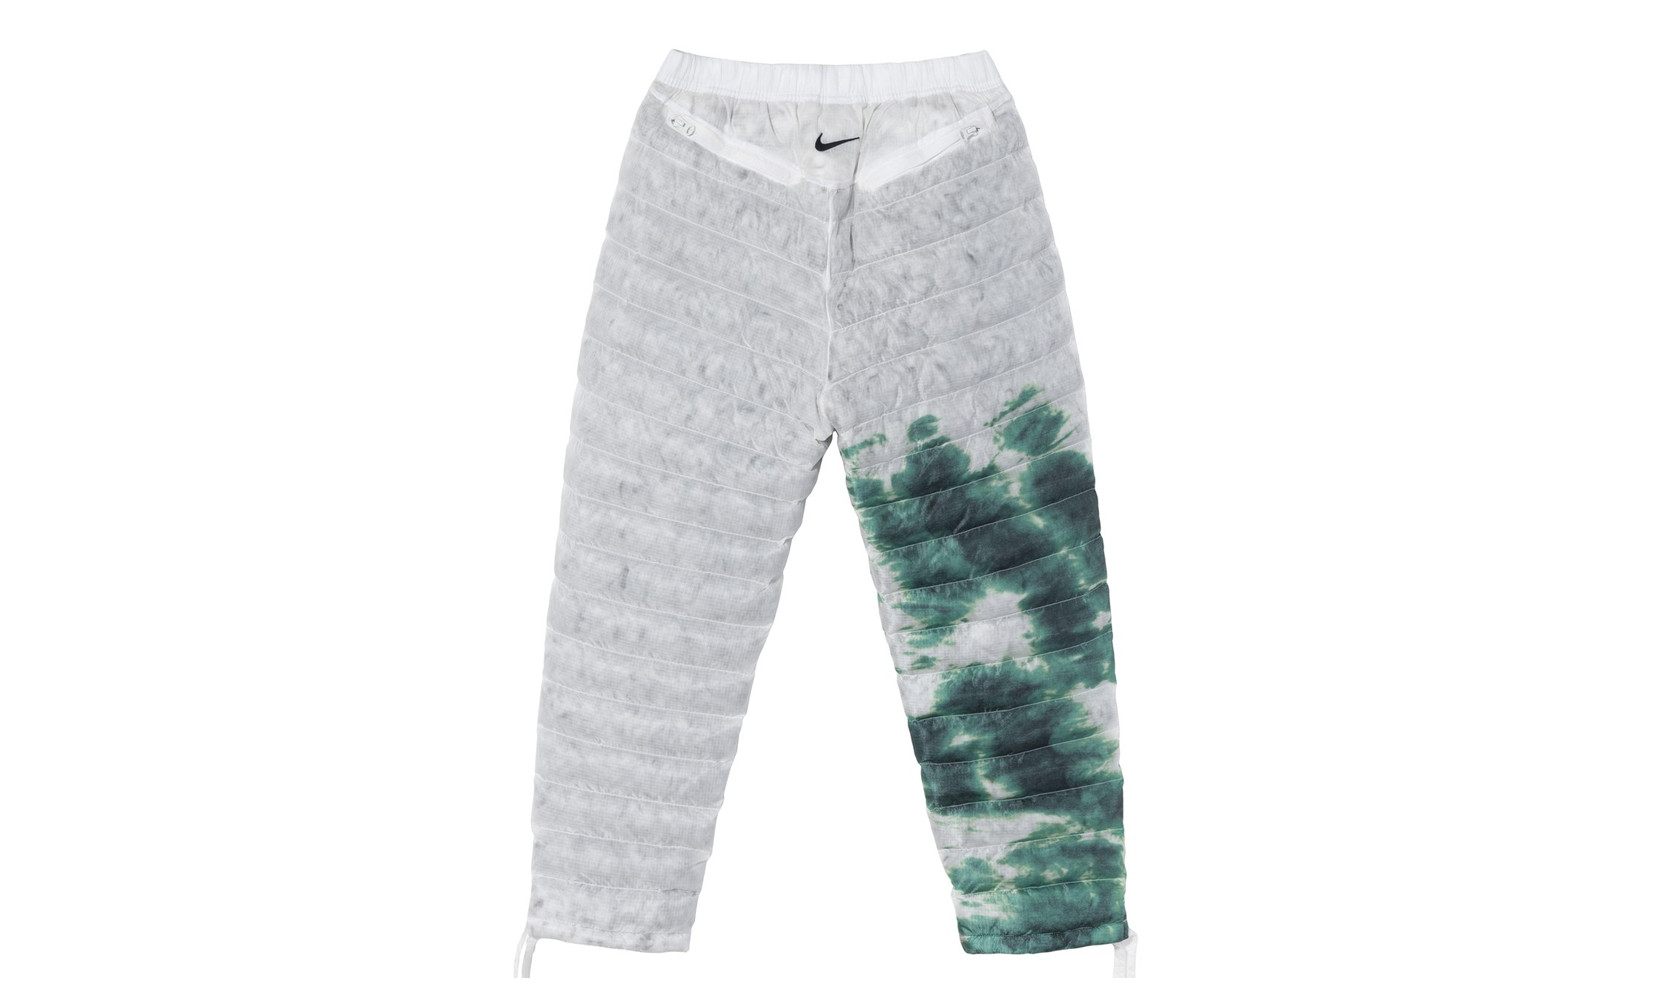 nike-stussy-spring-2021-insulated-apparel-collection